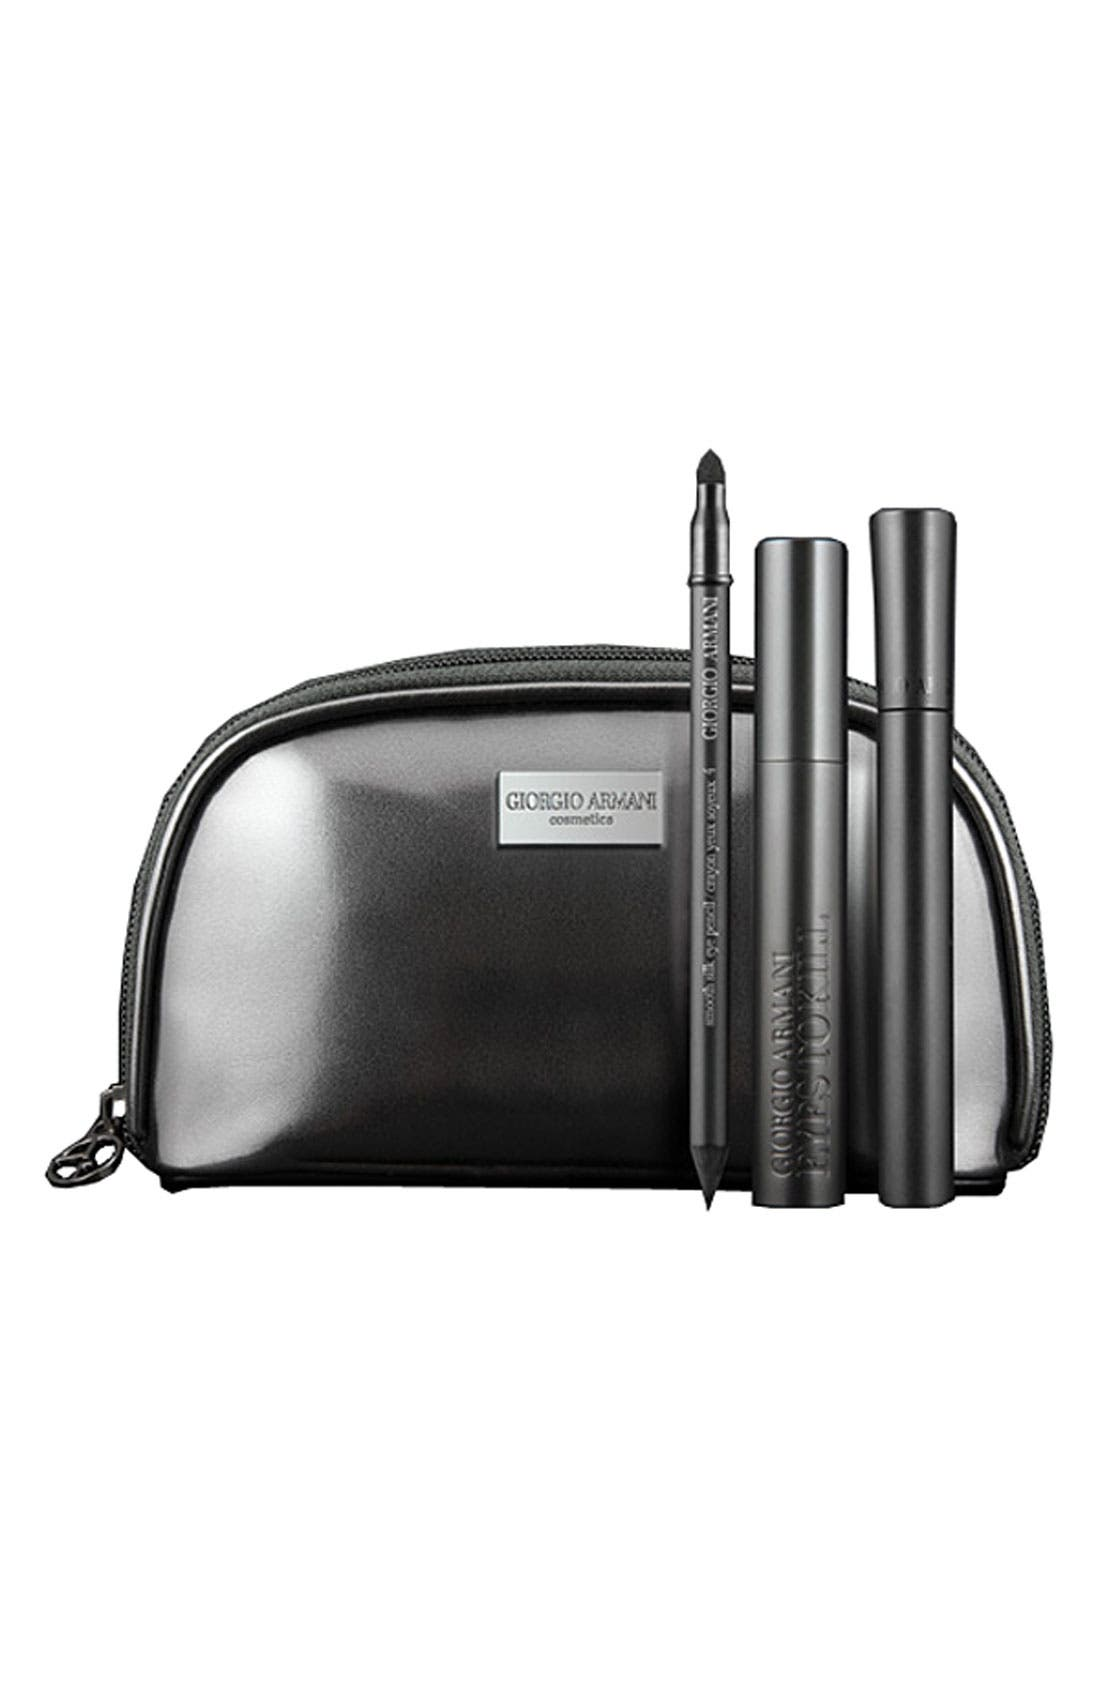 Main Image - Giorgio Armani 'Holiday Eye Look' Set ($85 Value)